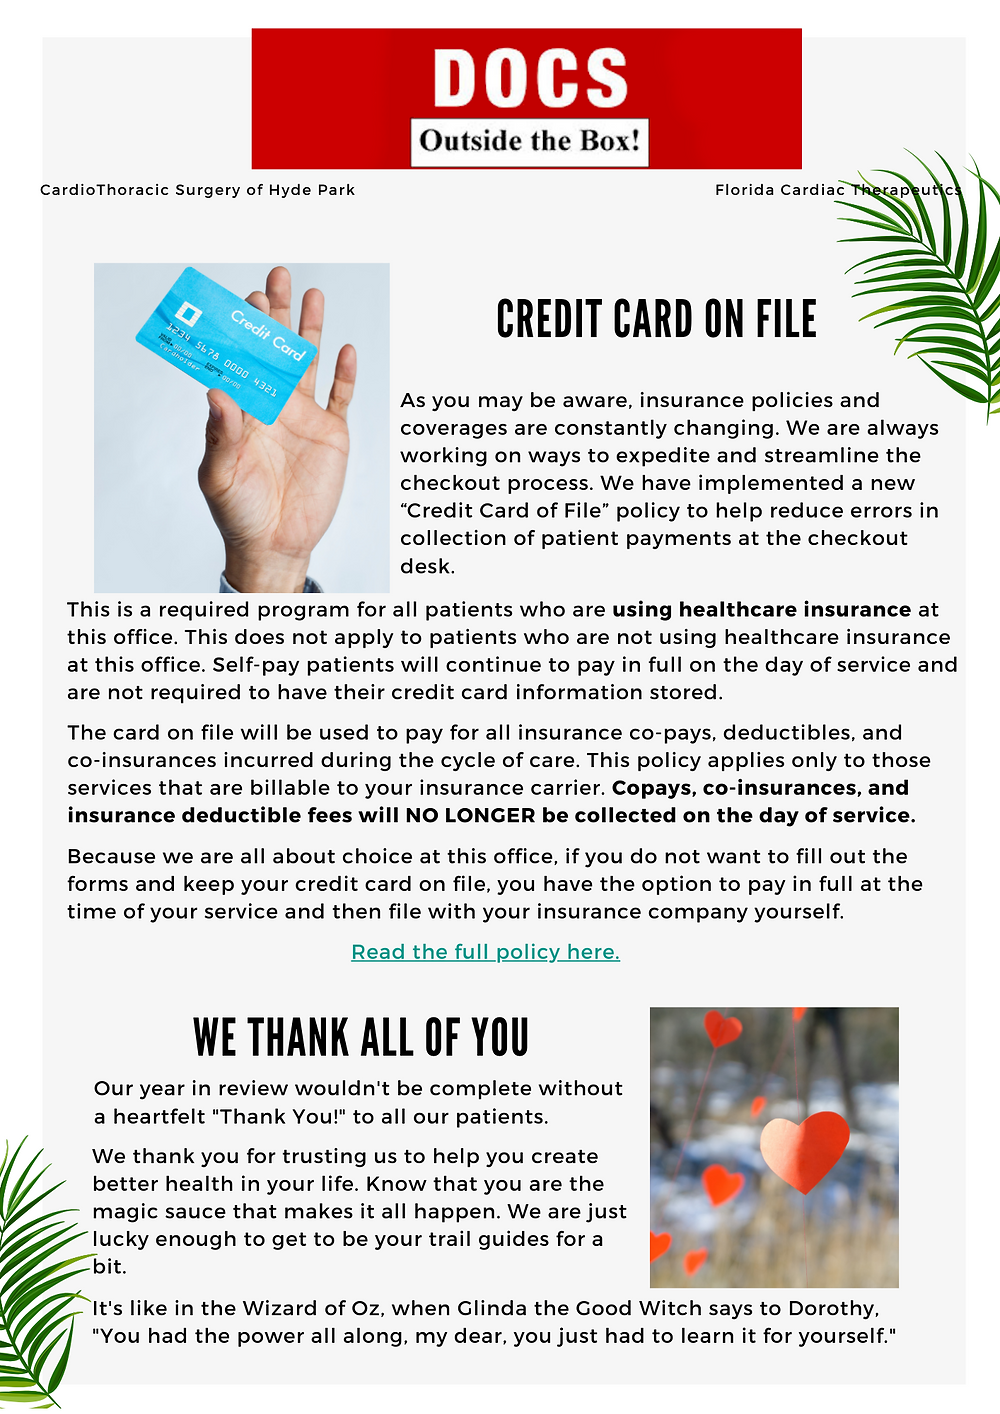 Credit card on file policy and thank you to everyone for making what DOCS does possible.